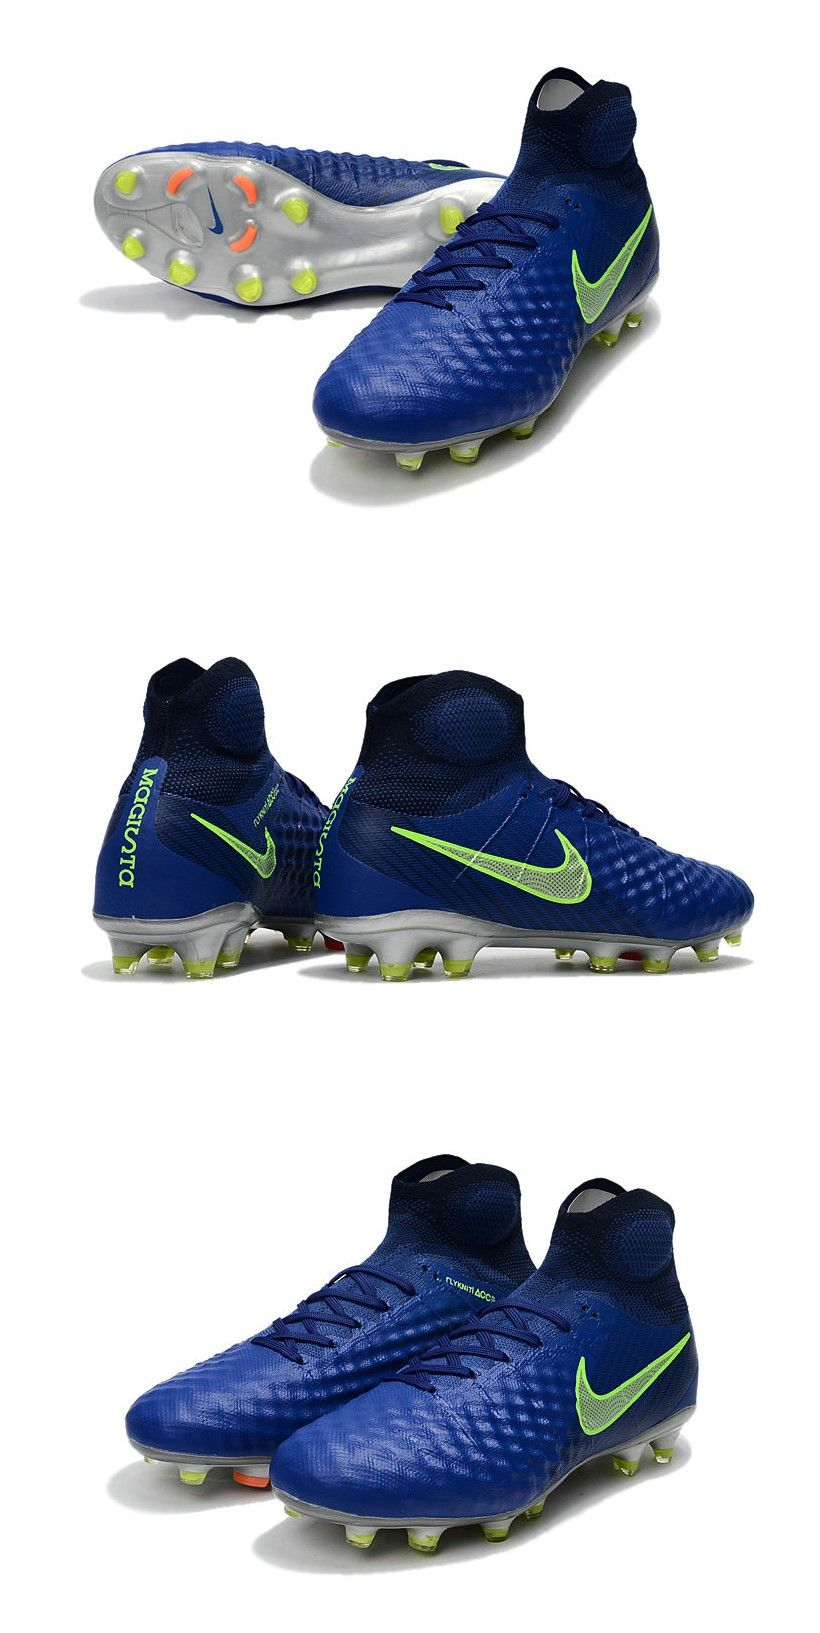 Royal blue Nike Magista Obra 2 with Flyknit upper and 3D texture create one  of the